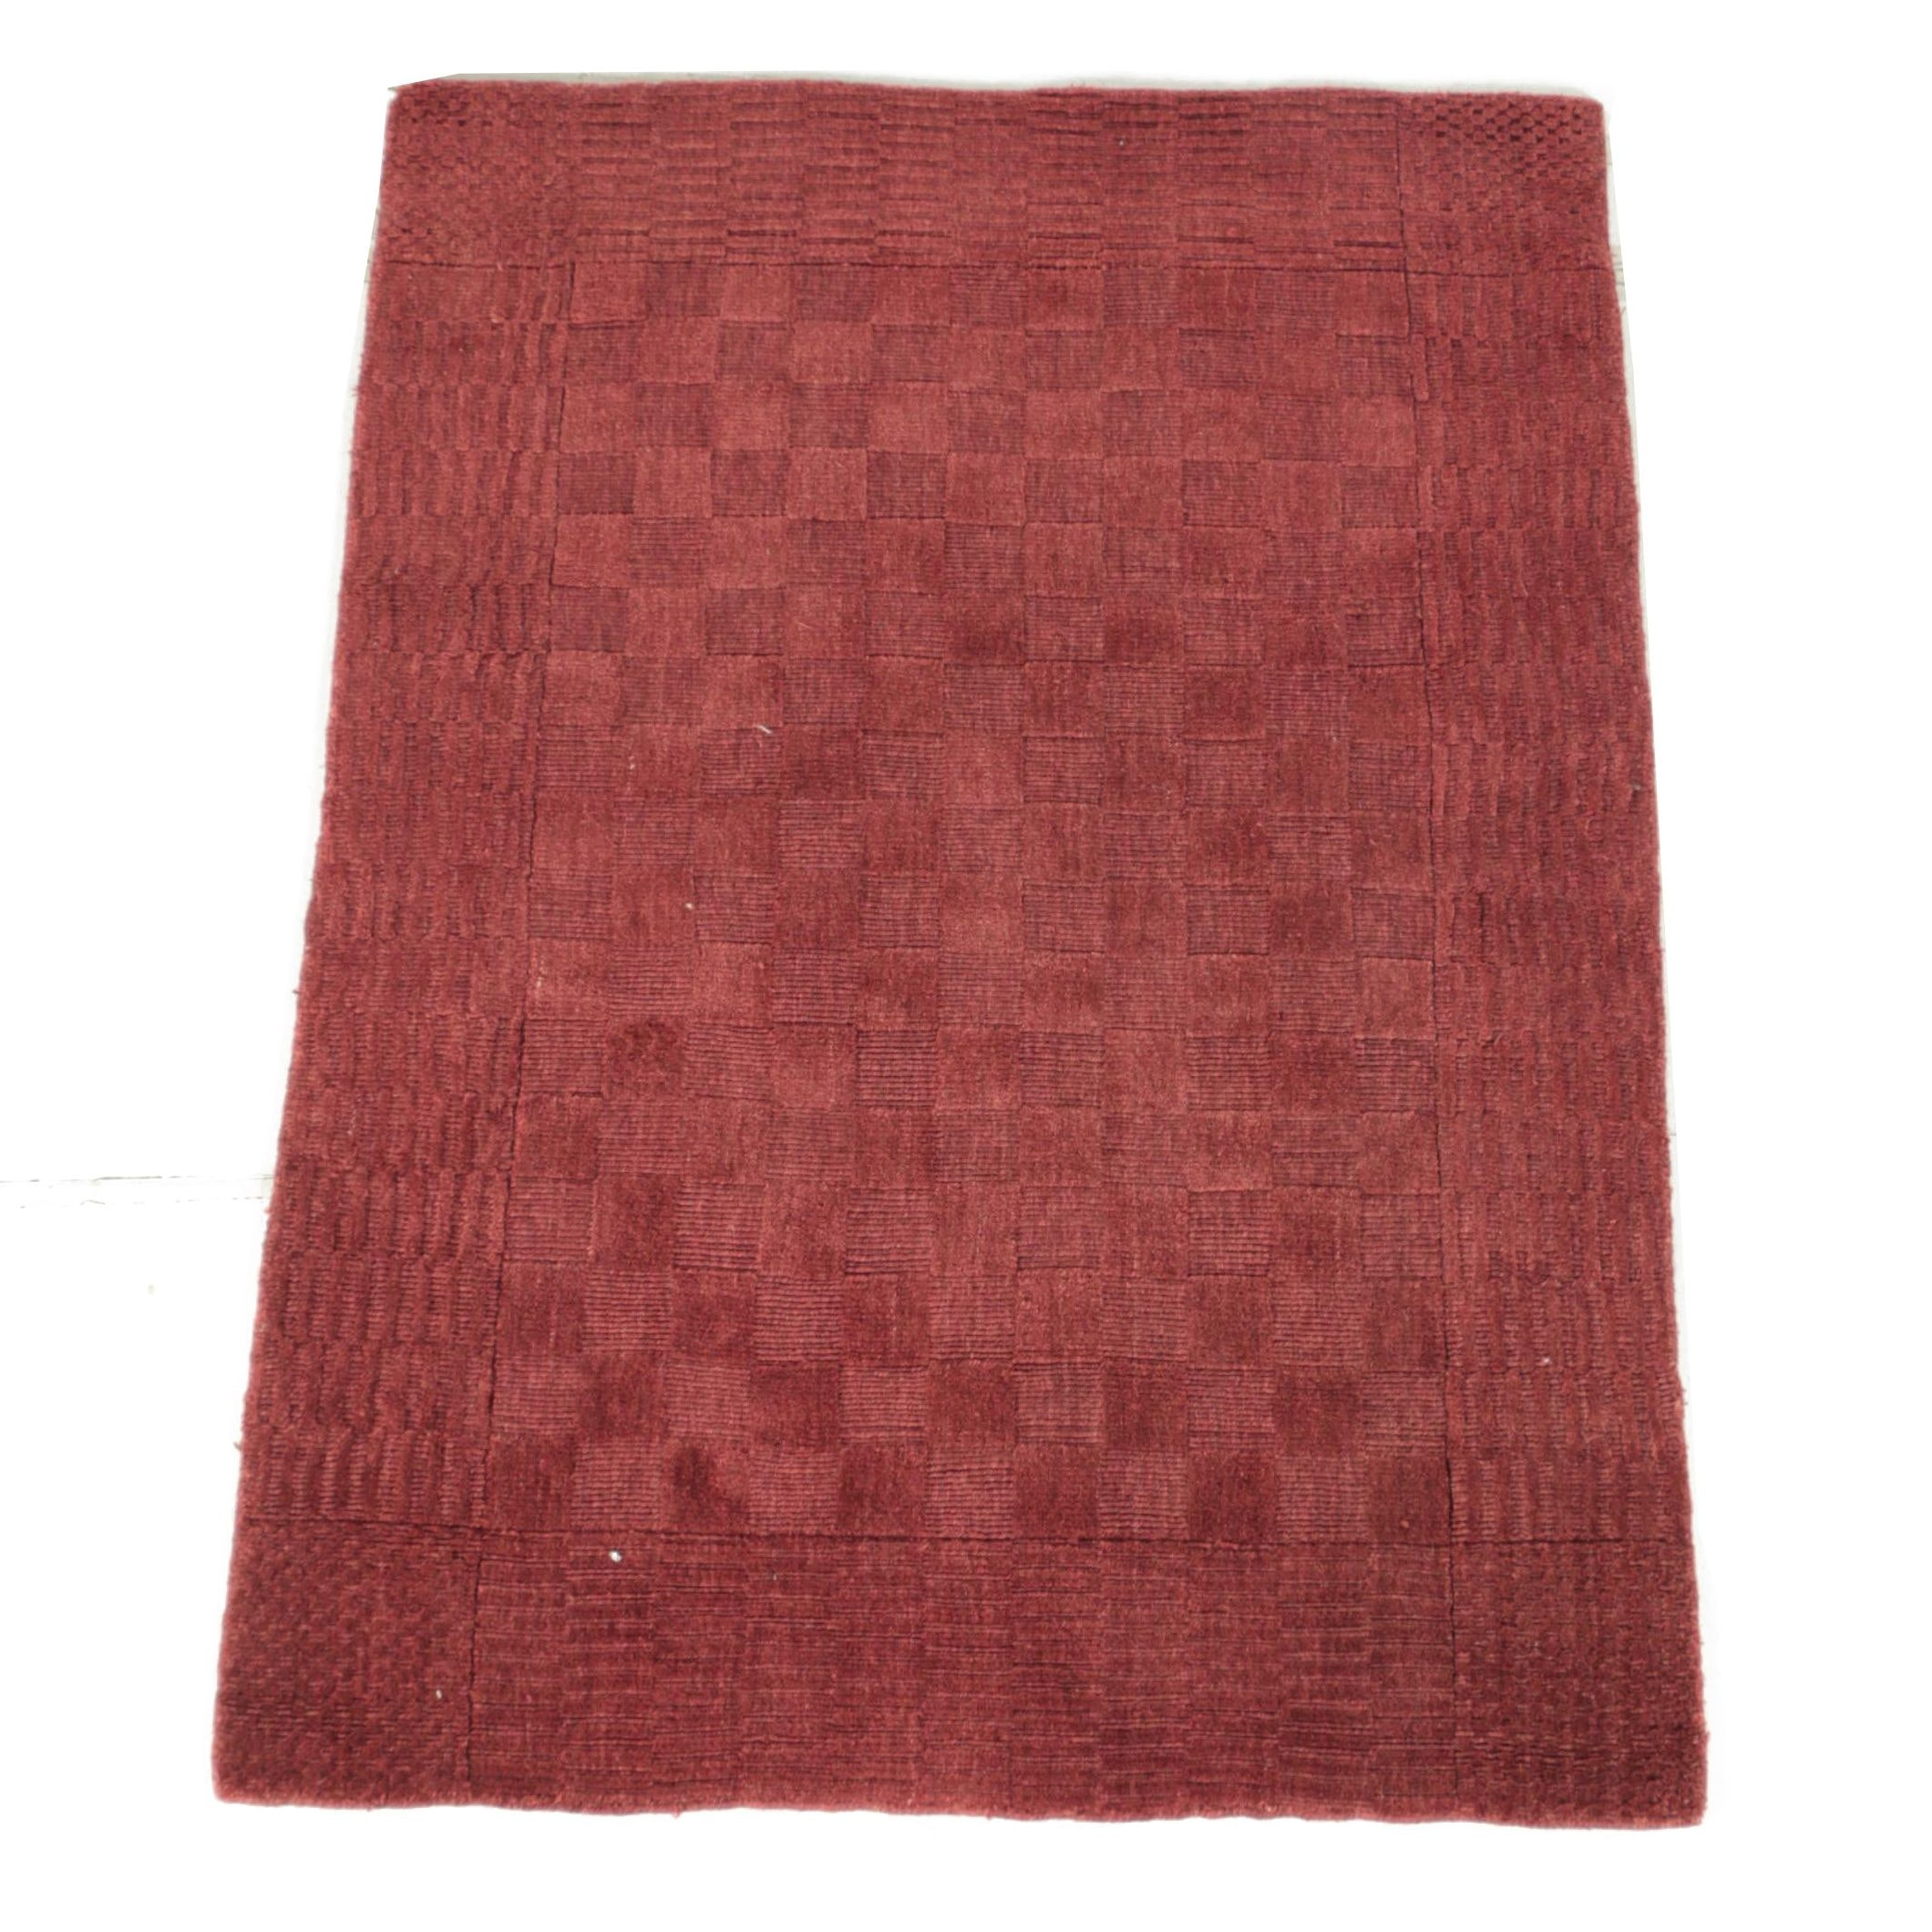 Hand-Knotted Indian Cut and Loop Pile Checkered Wool Area Rug